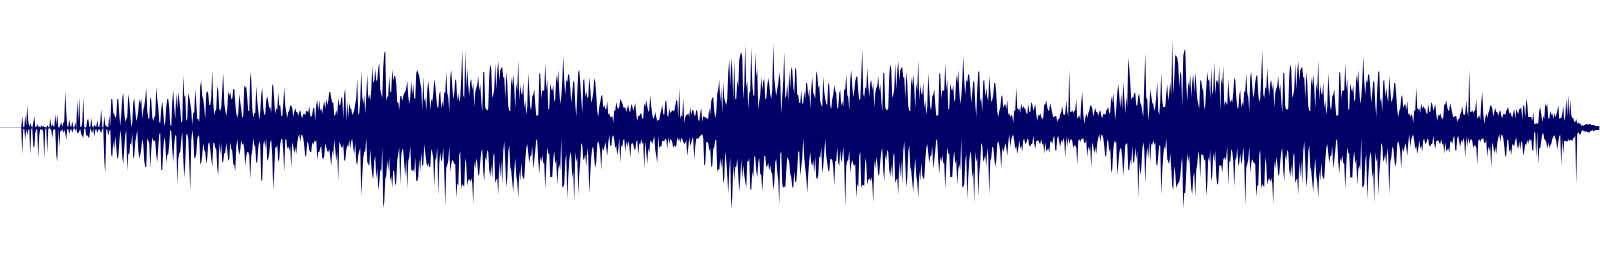 waveform of track #136599